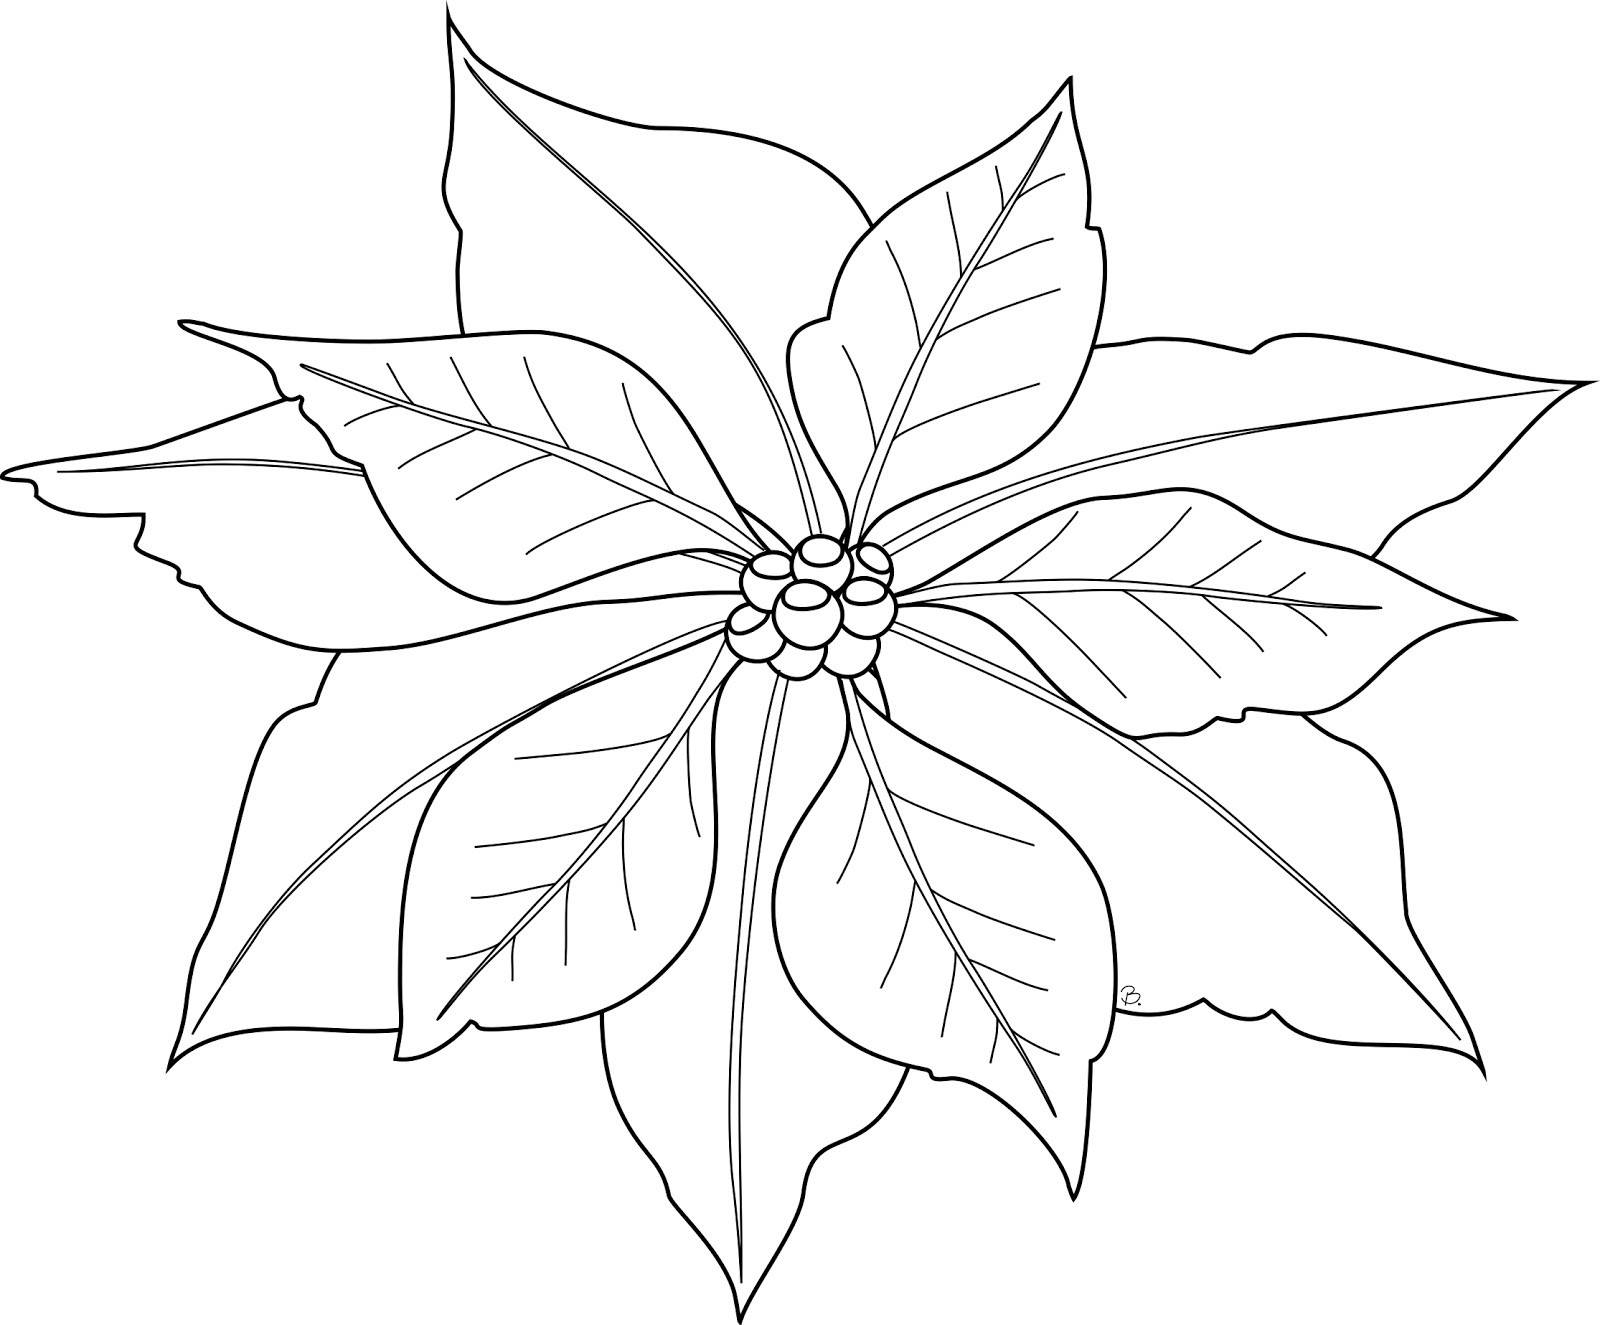 poinsettia coloring page poinsettia in a bucket for poinsettia day coloring page coloring page poinsettia